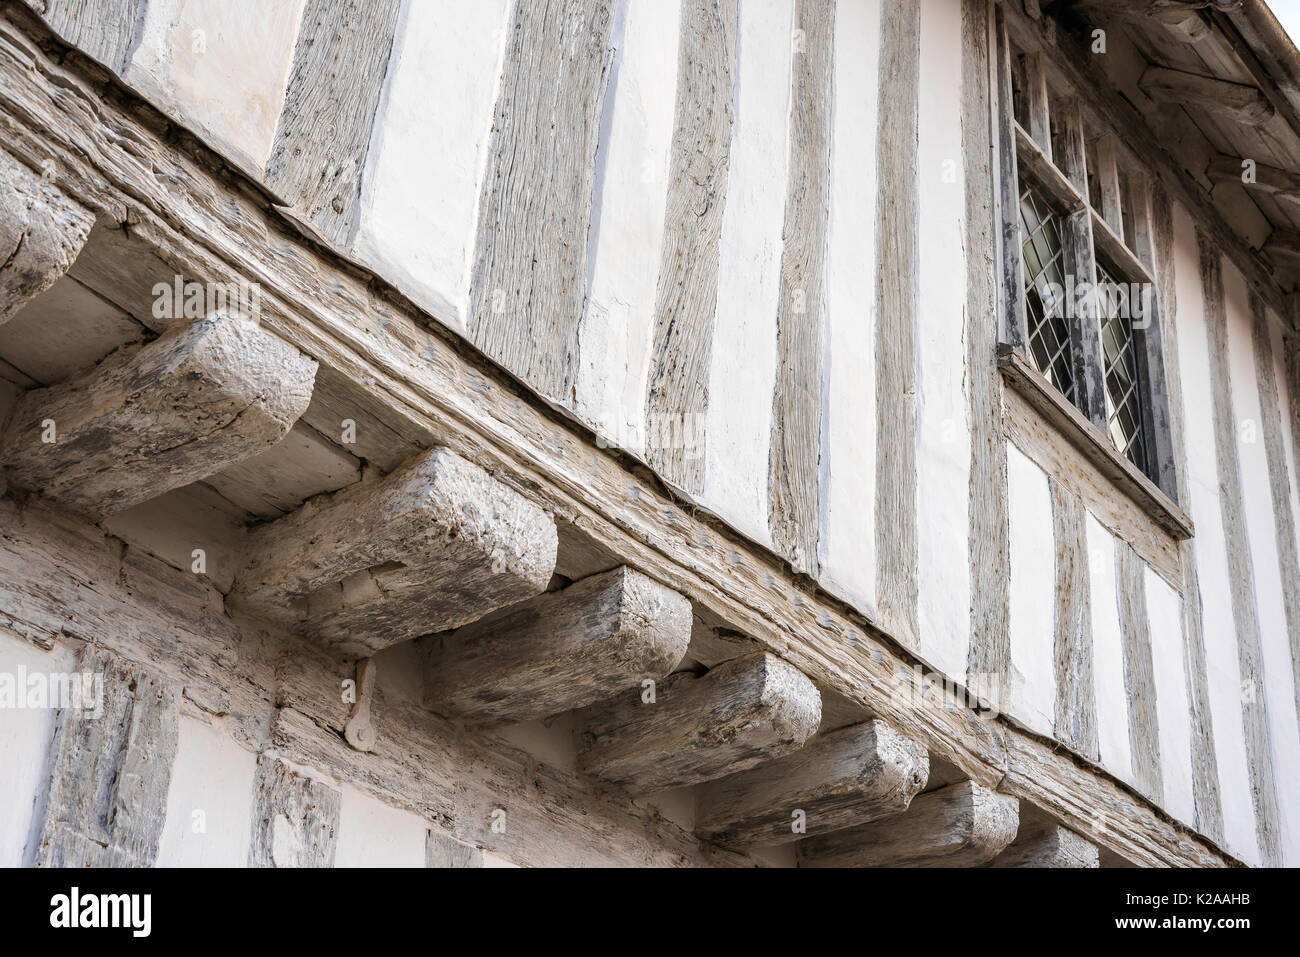 Lavenham Suffolk, detail of medieval lime-washed oak beams on the jettied front of the Guildhall in Lavenham, Suffolk. - Stock Image